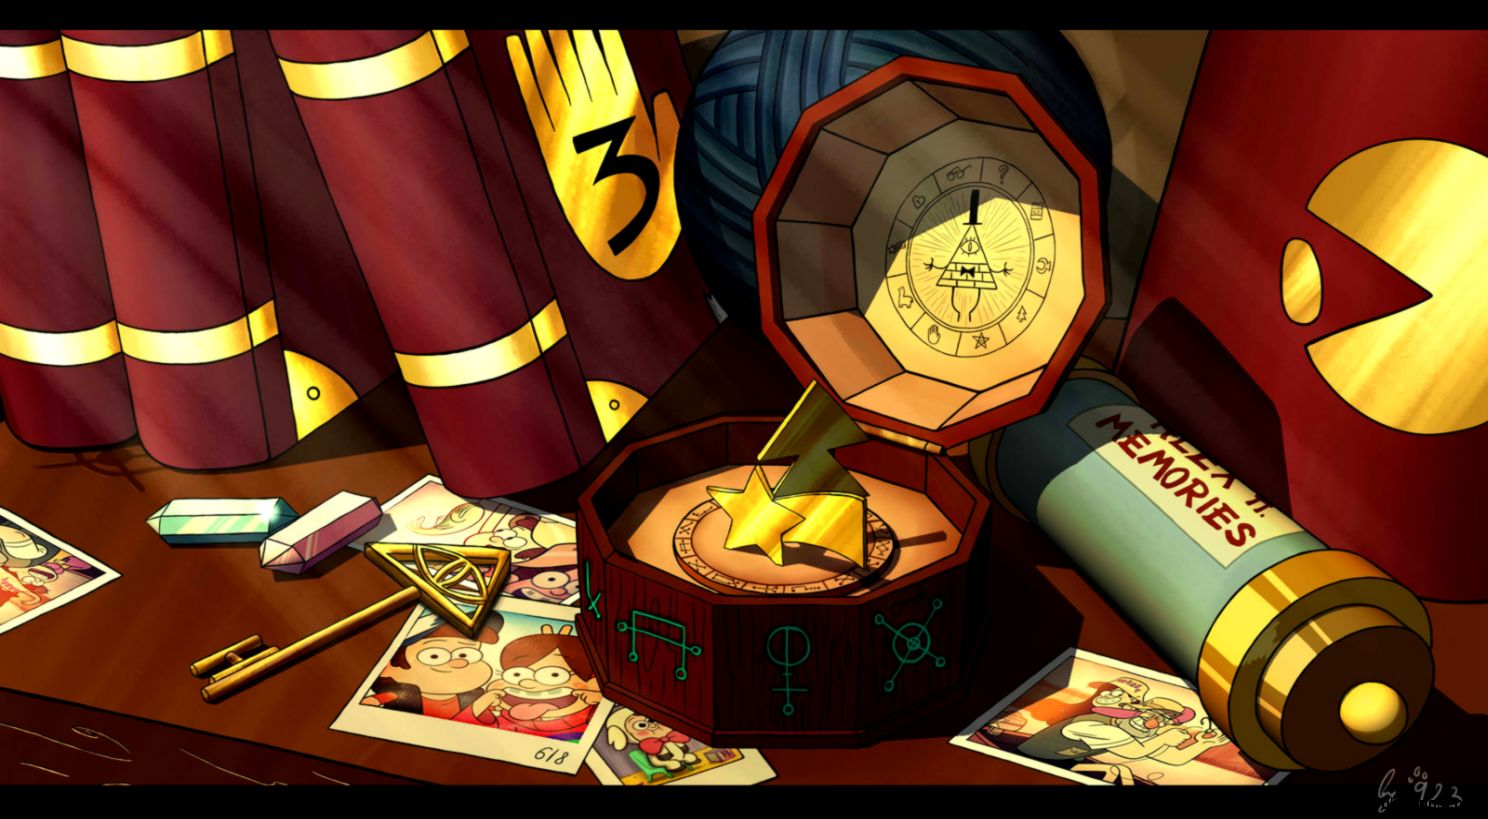 gravity falls wallpaper tumblr backgrounds - photo #34